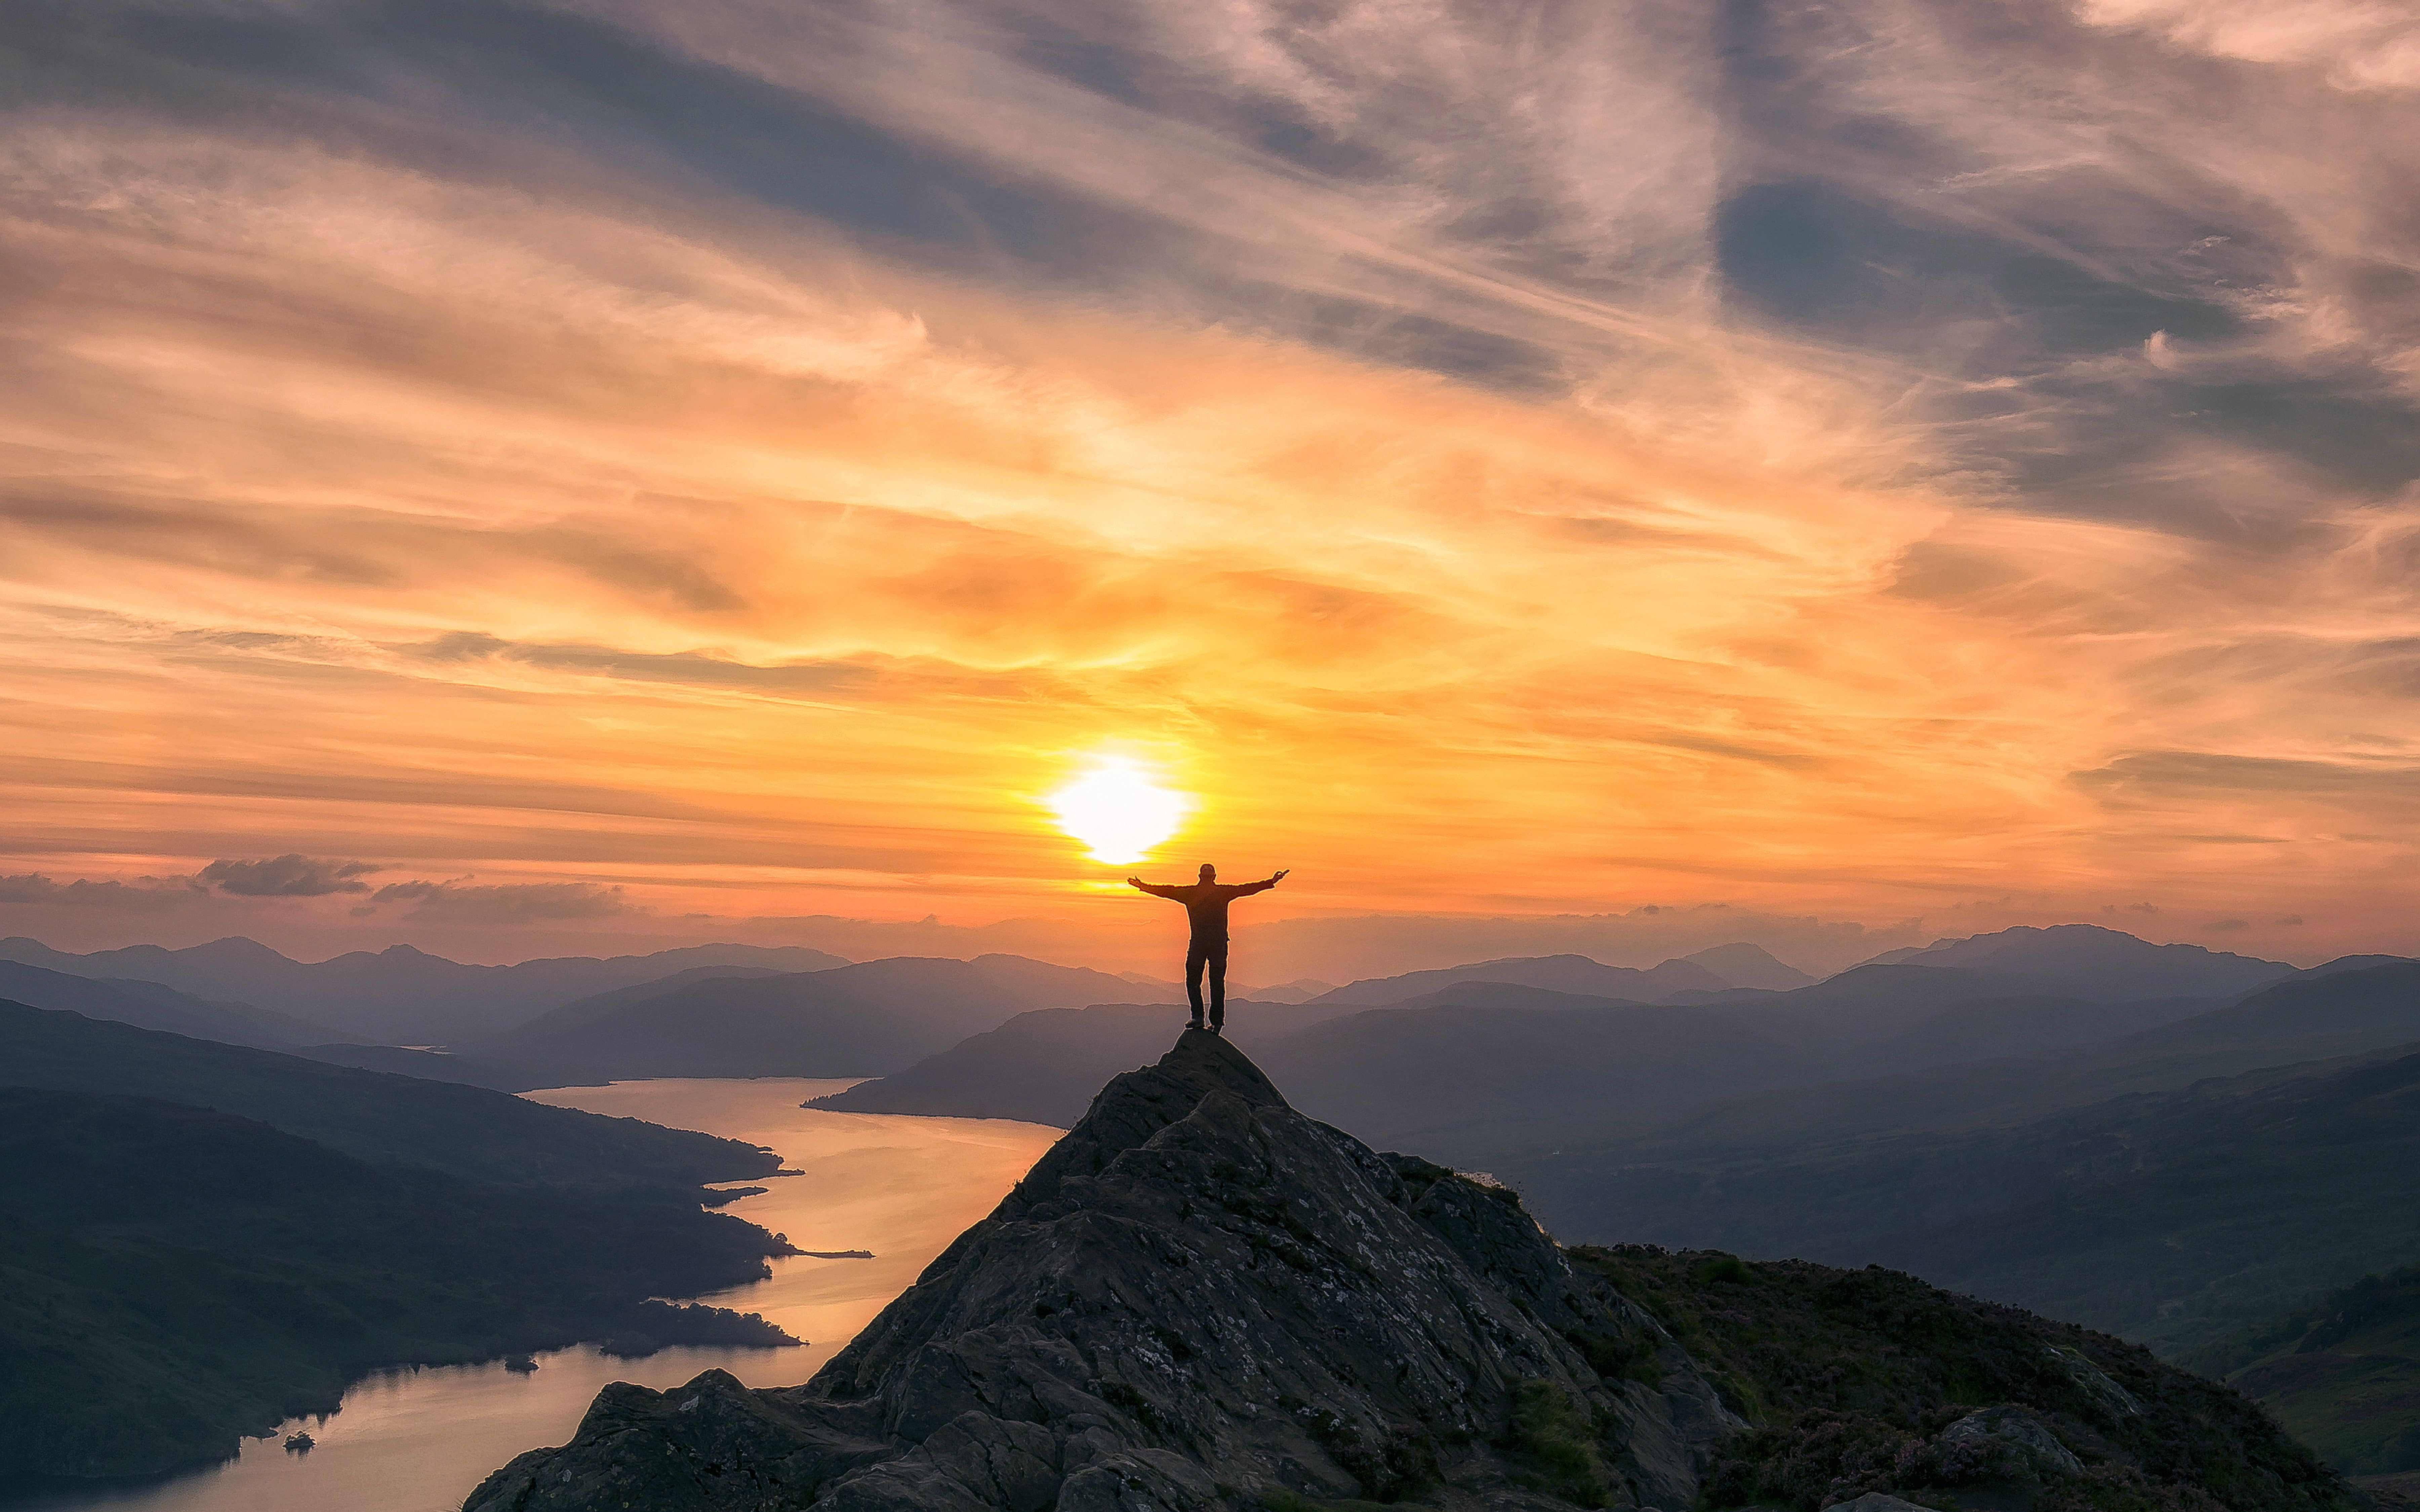 7200x4500 Photo of man on top of mountain during sunset HD wallpaper ...